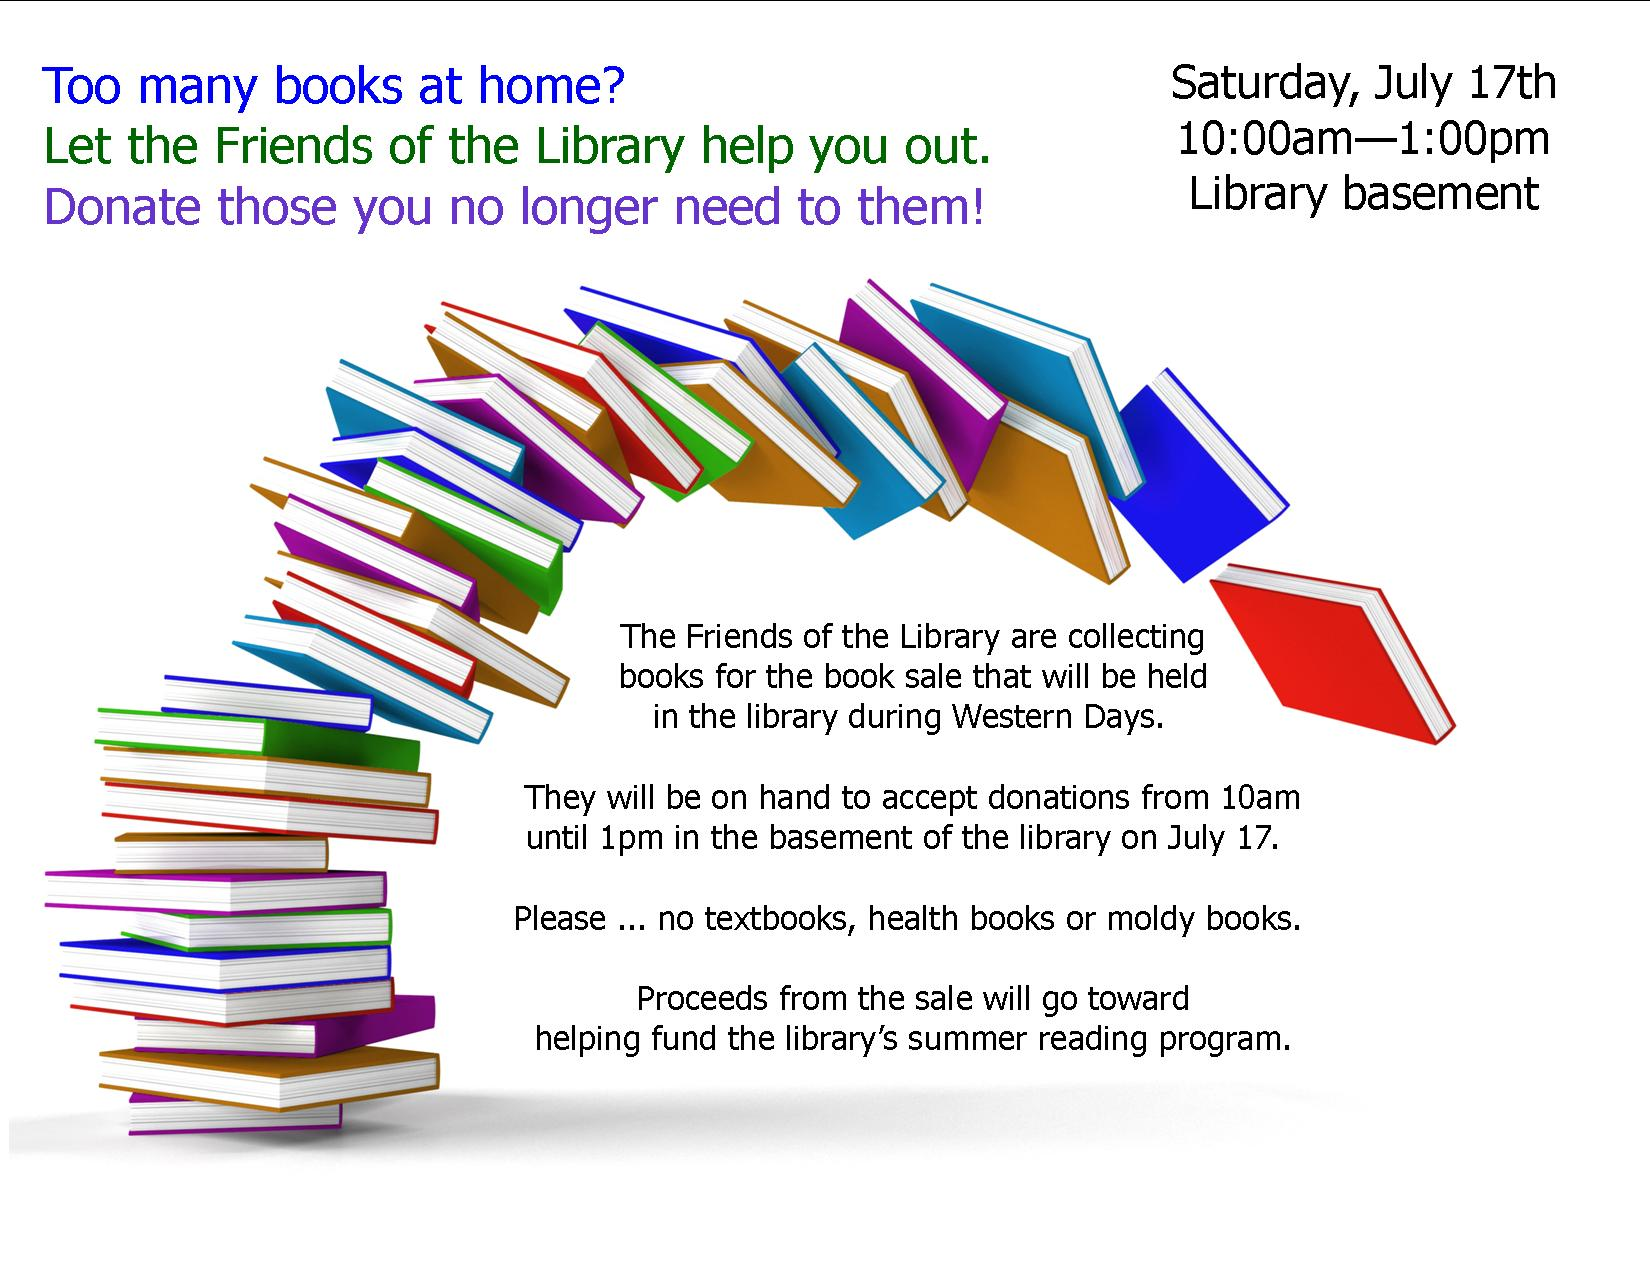 Friends of the Library will take your used books, July 17th 10am-1pm at the library.